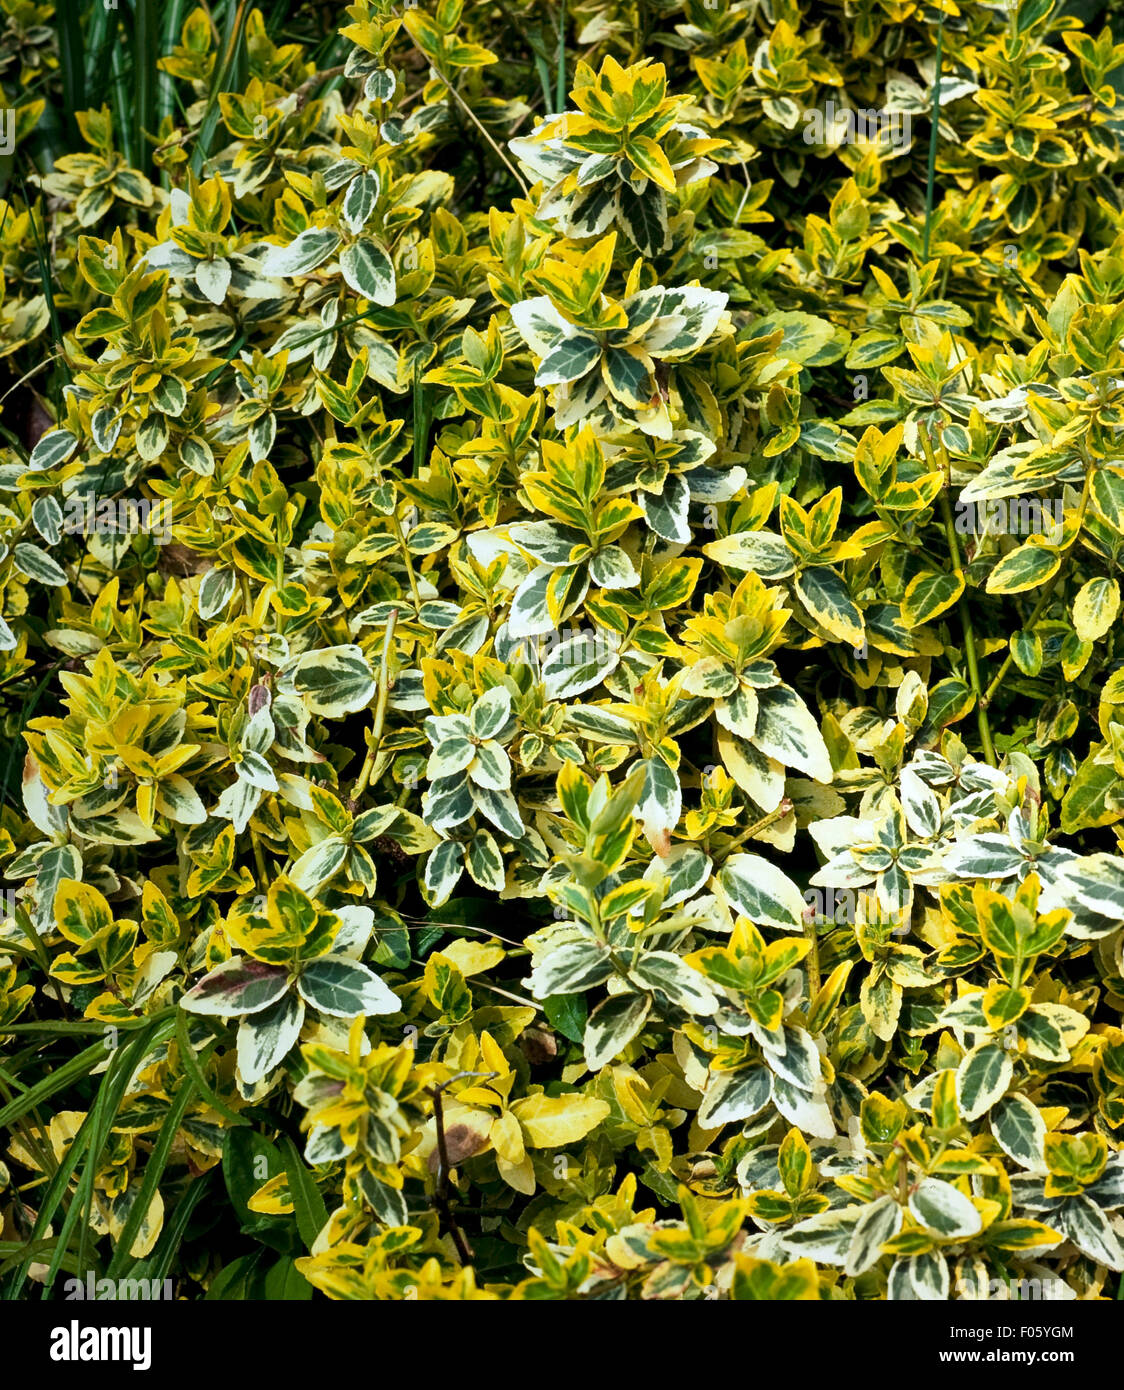 Spindelstrauch, Euonymus fortunei, Emerald«n Gold - Stock Image